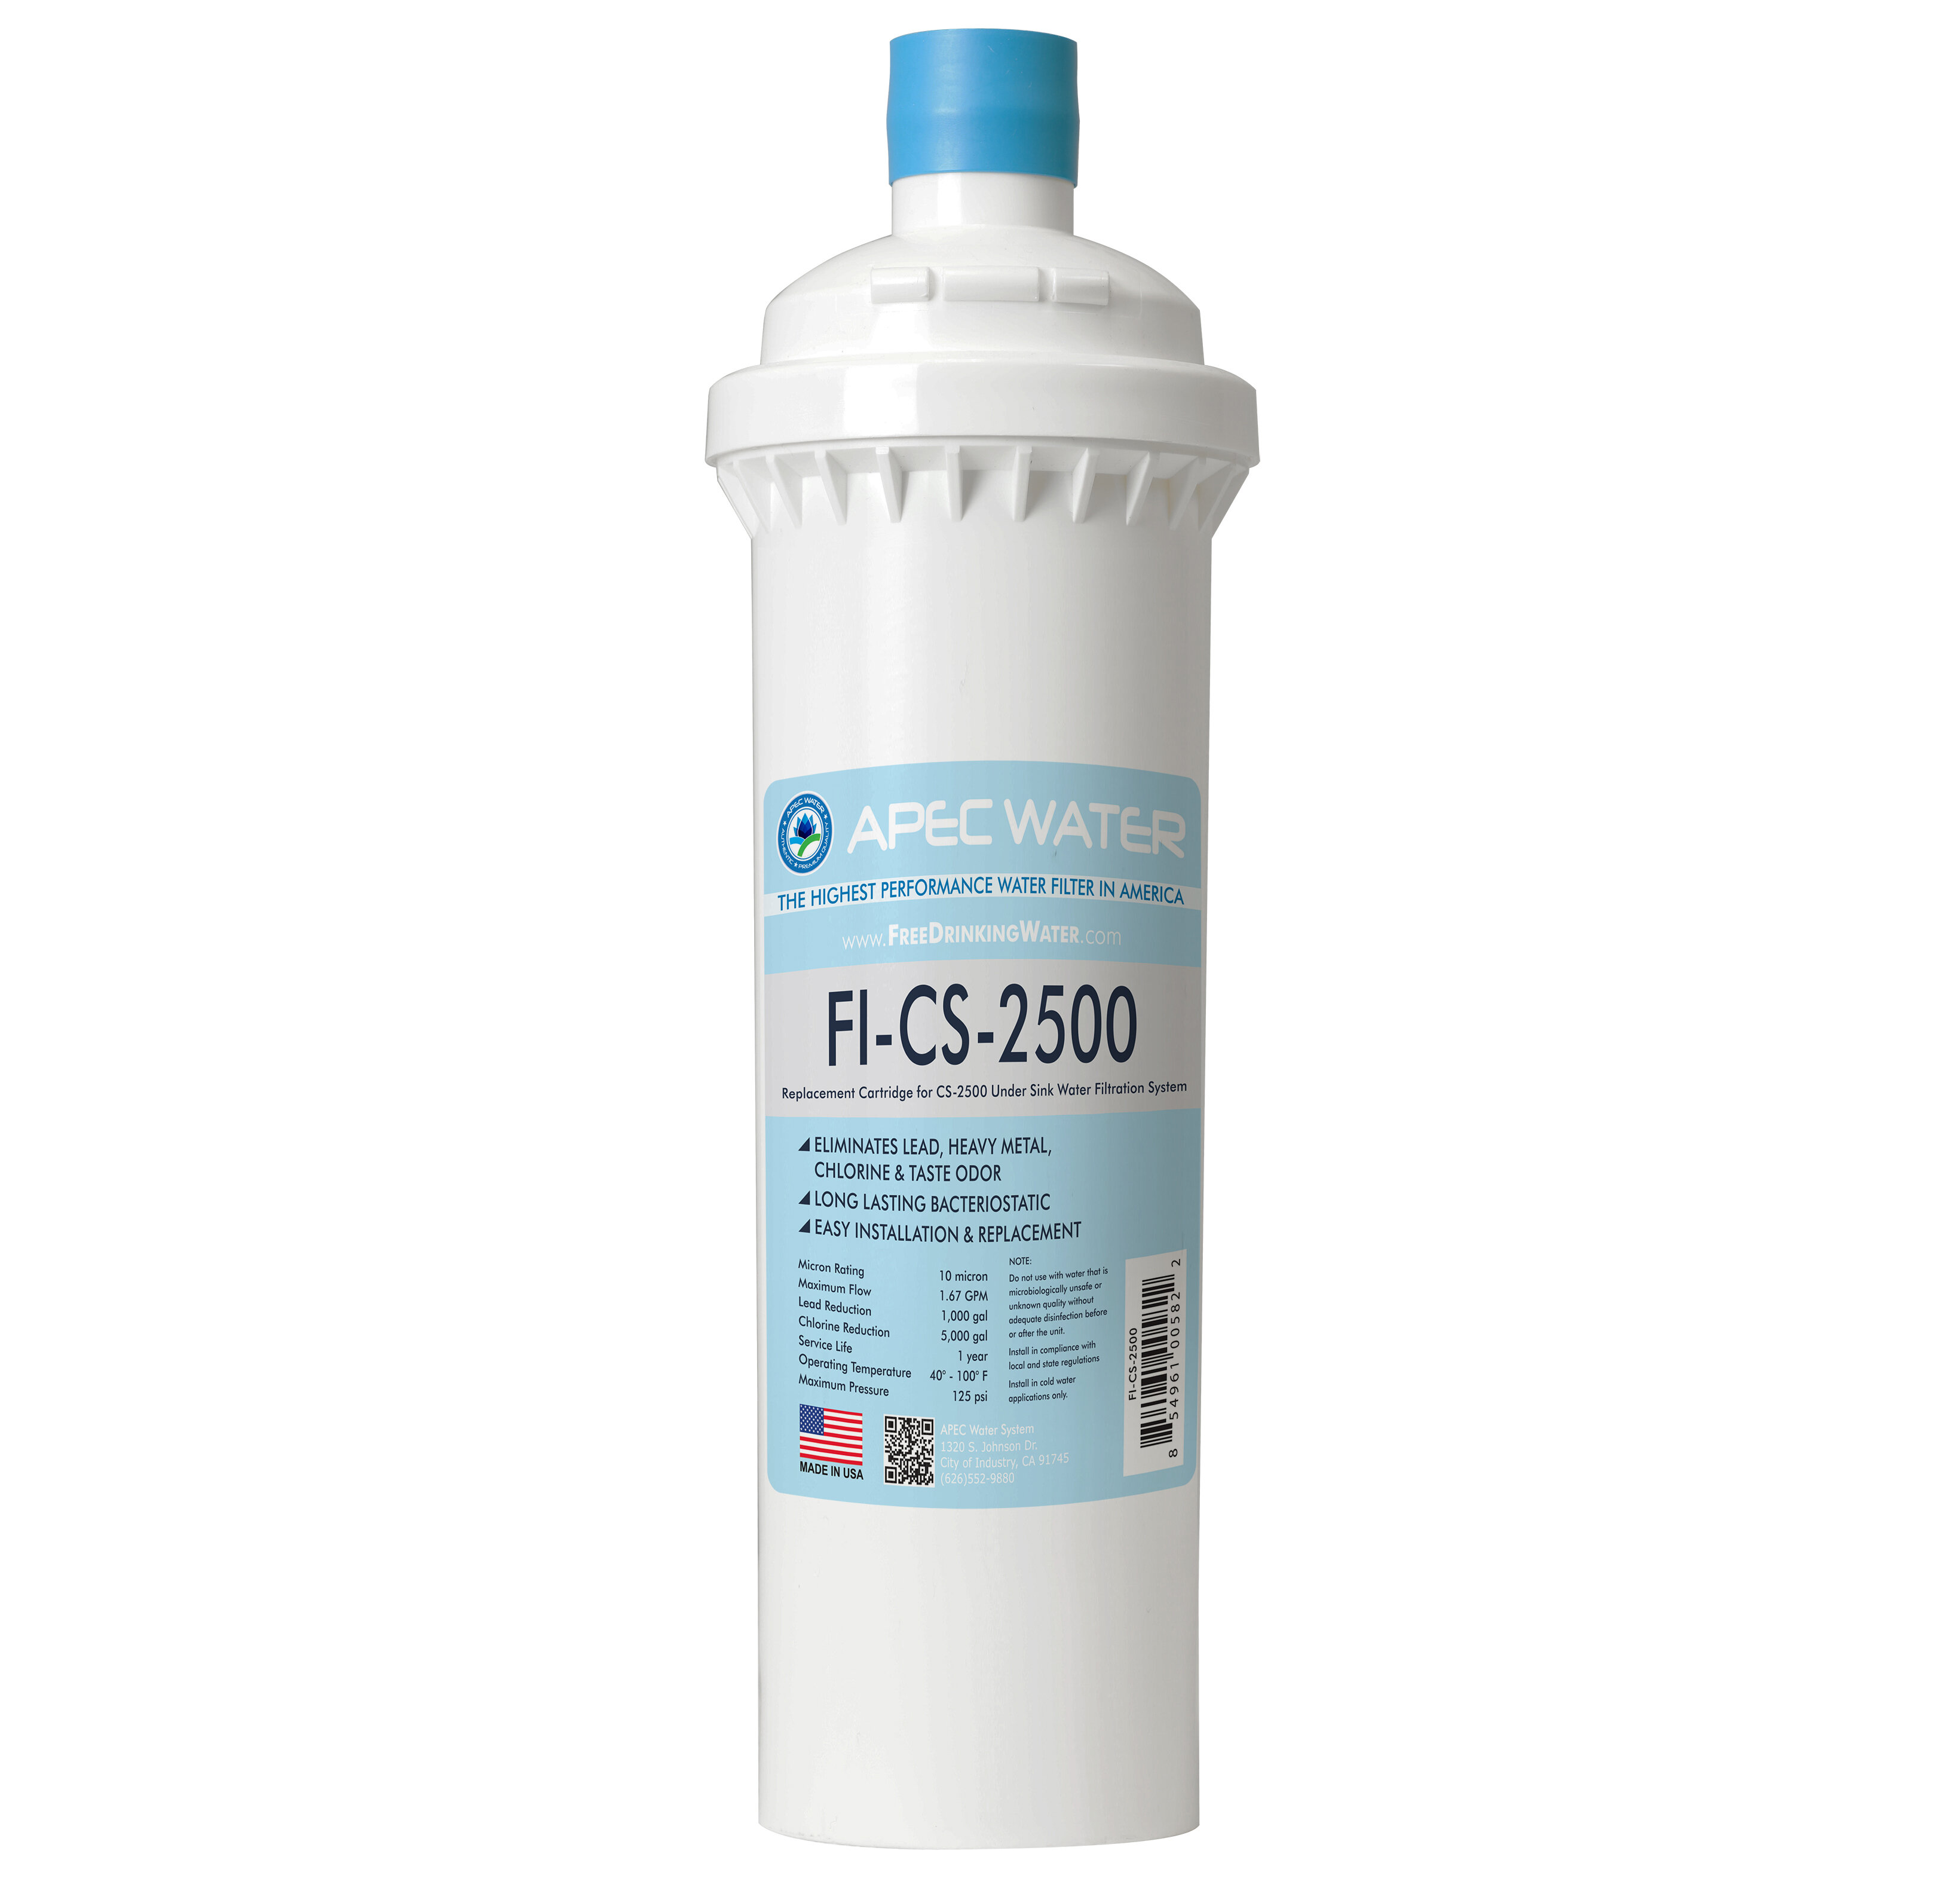 CS-2500 Premium Quality US Made Filter APEC Water Systems APEC Ultra High Capacity Under Sink Water Filtration System